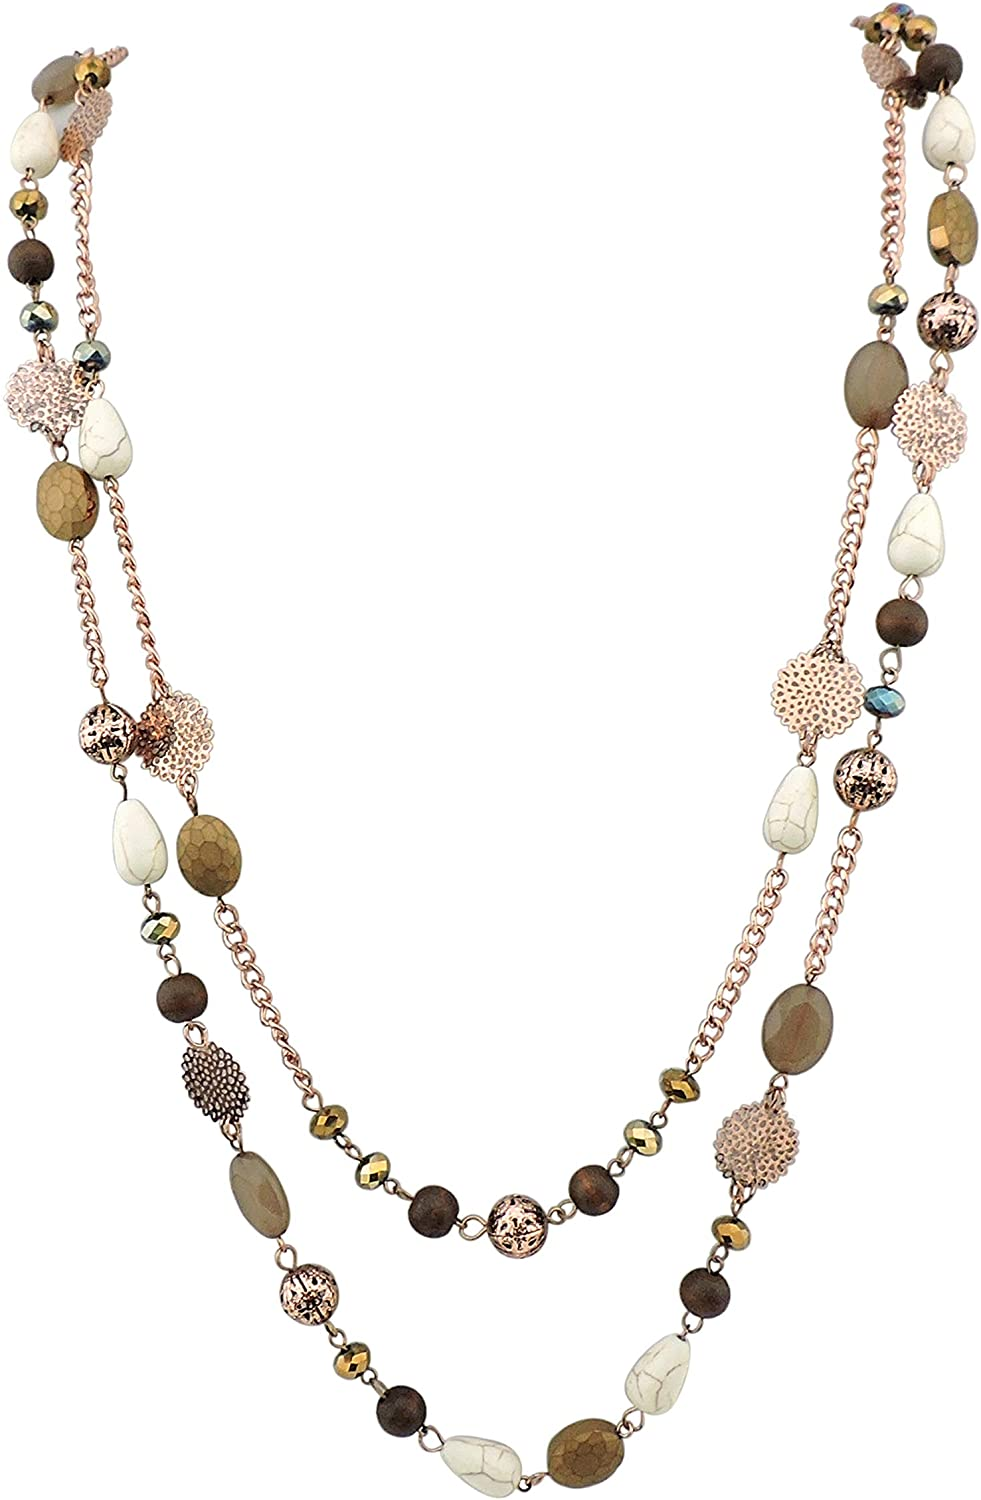 BOCAR 2 Layer Long Link Chain Necklace Crystal Beads Women Party Long Necklace Gift